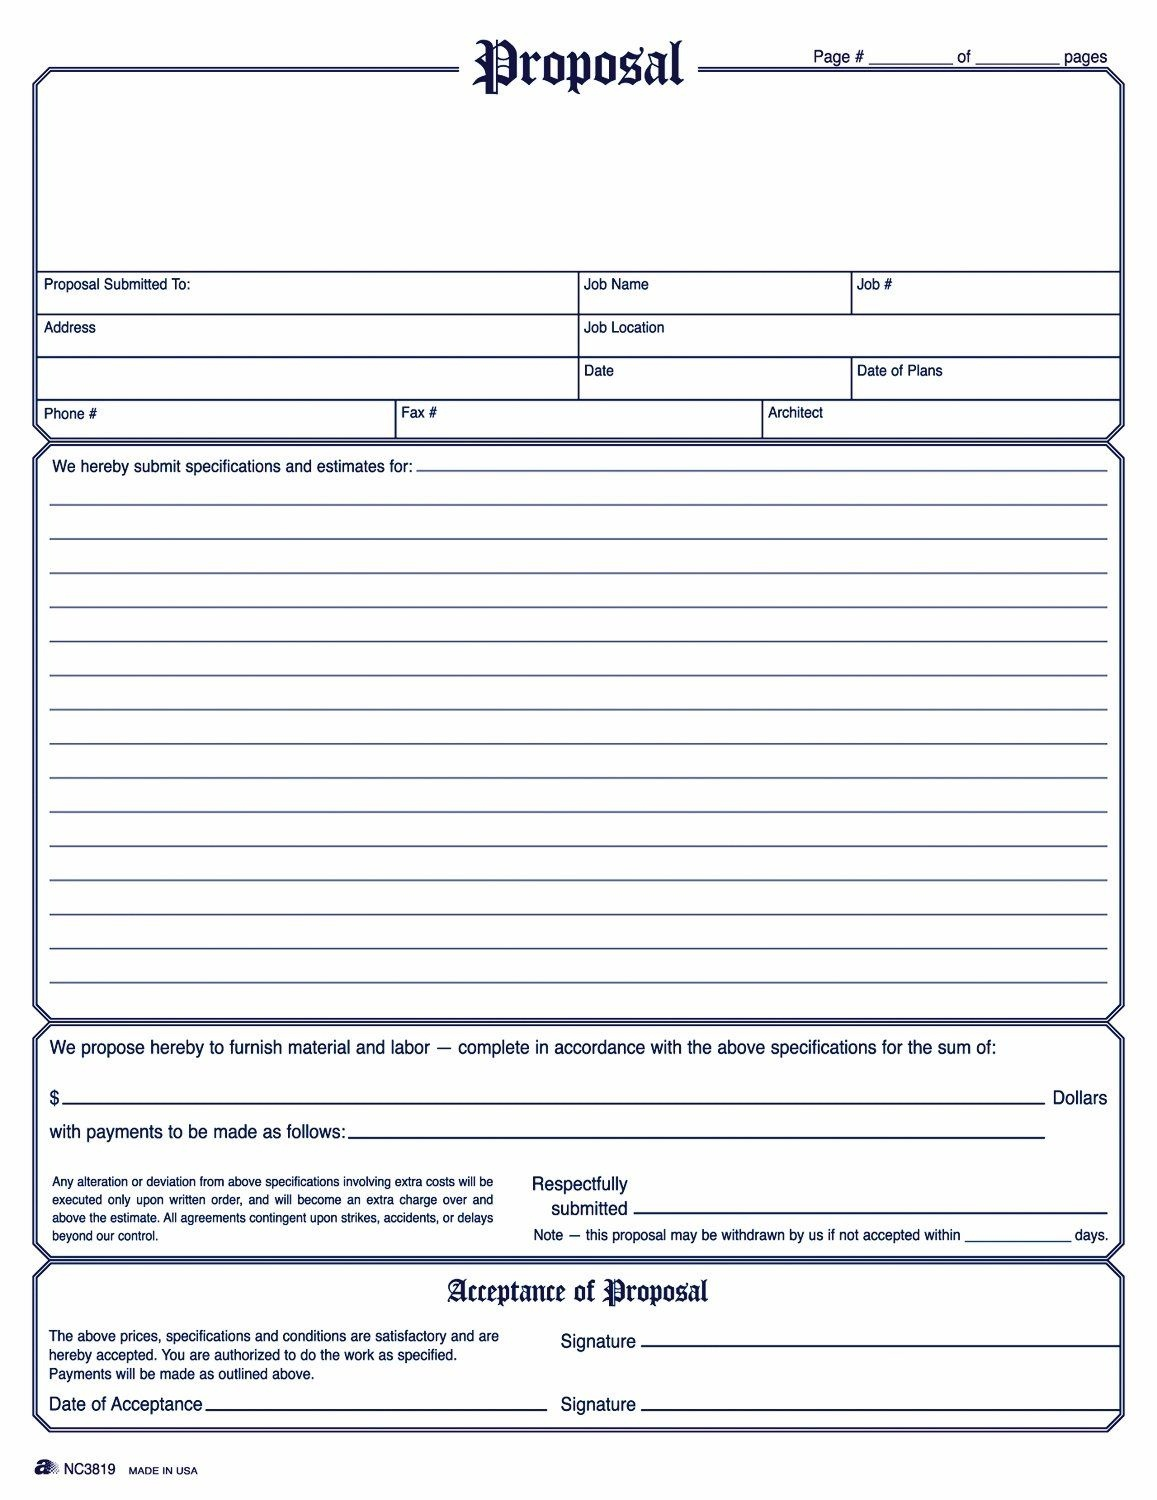 Image Result For General Contractor Forms Templates | Job Proprosals - Free Printable Proposal Forms